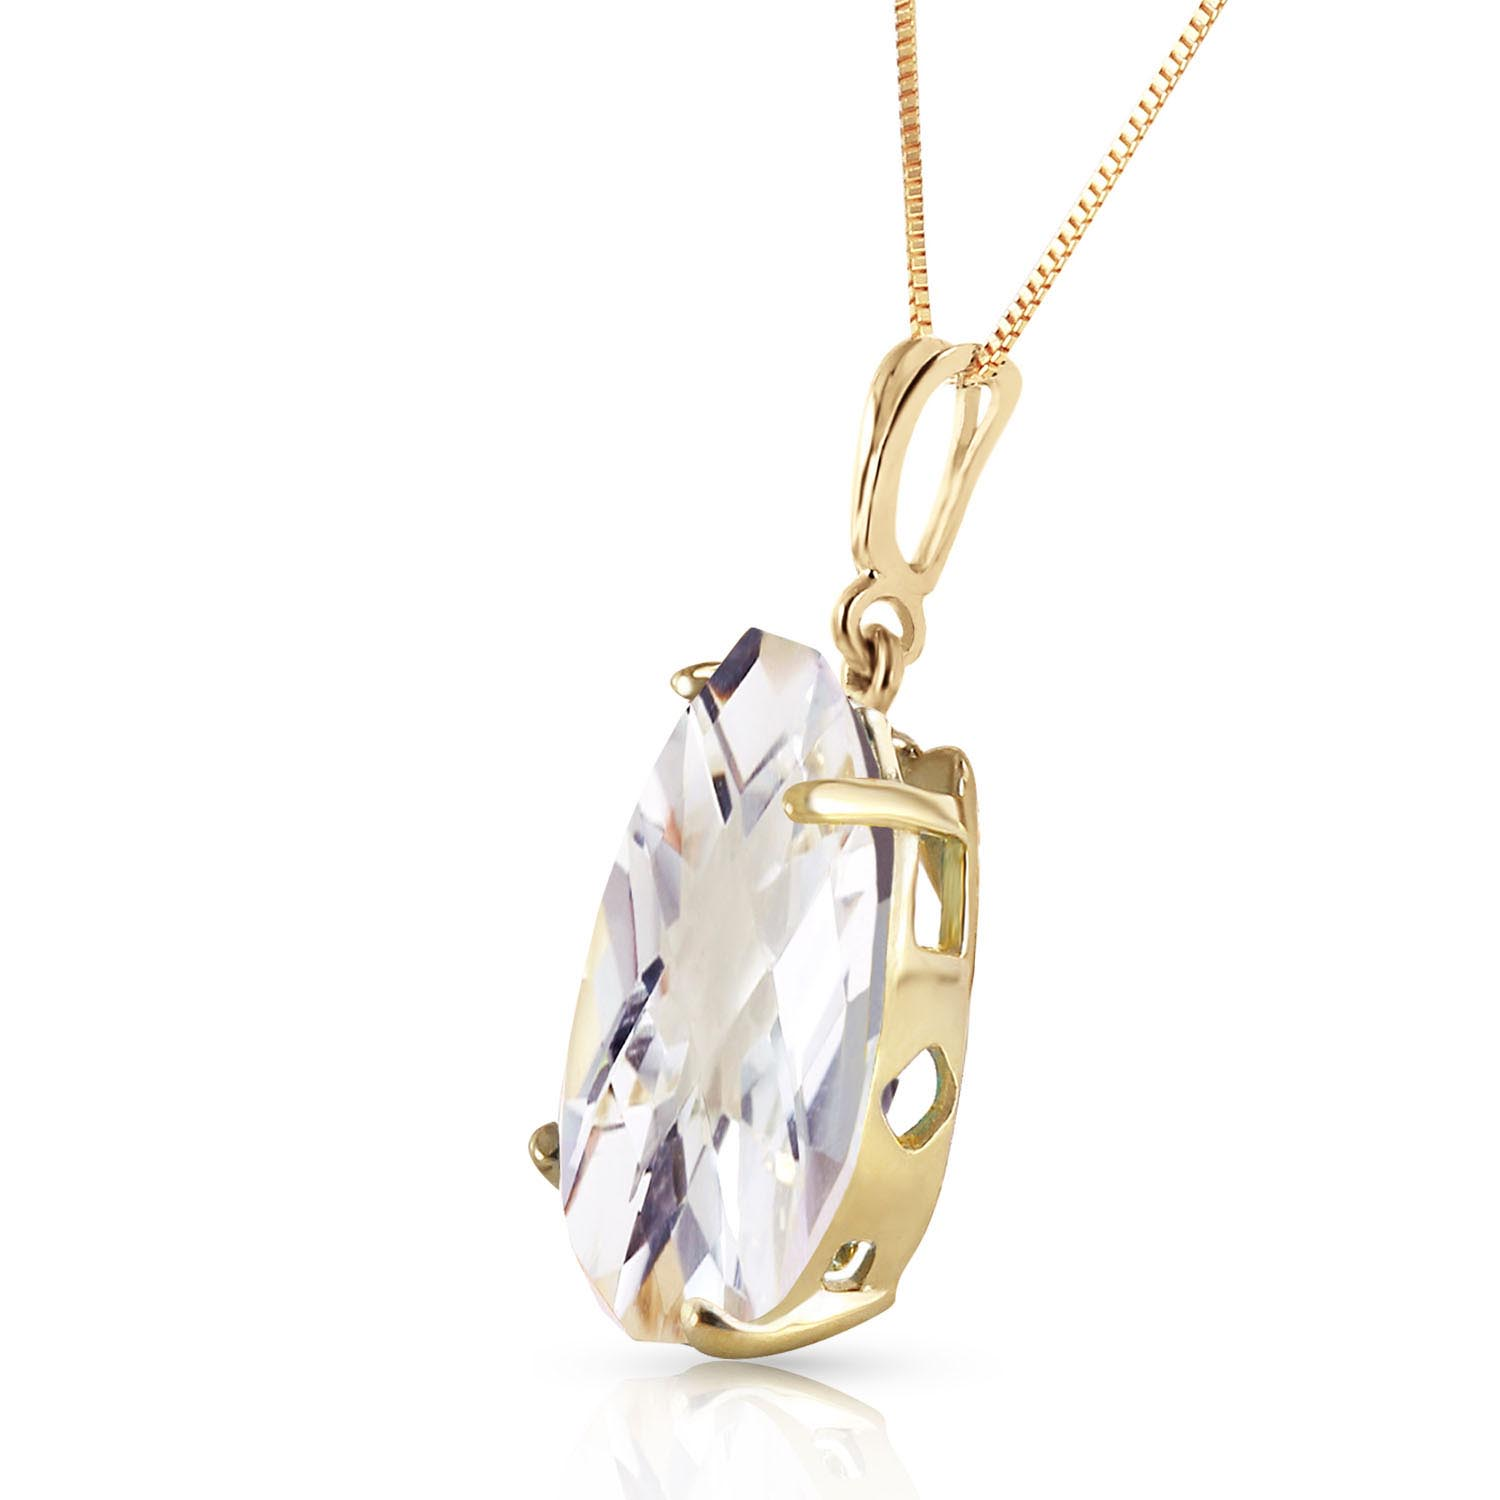 Pear Cut White Topaz Pendant Necklace 5.0ct in 9ct Gold